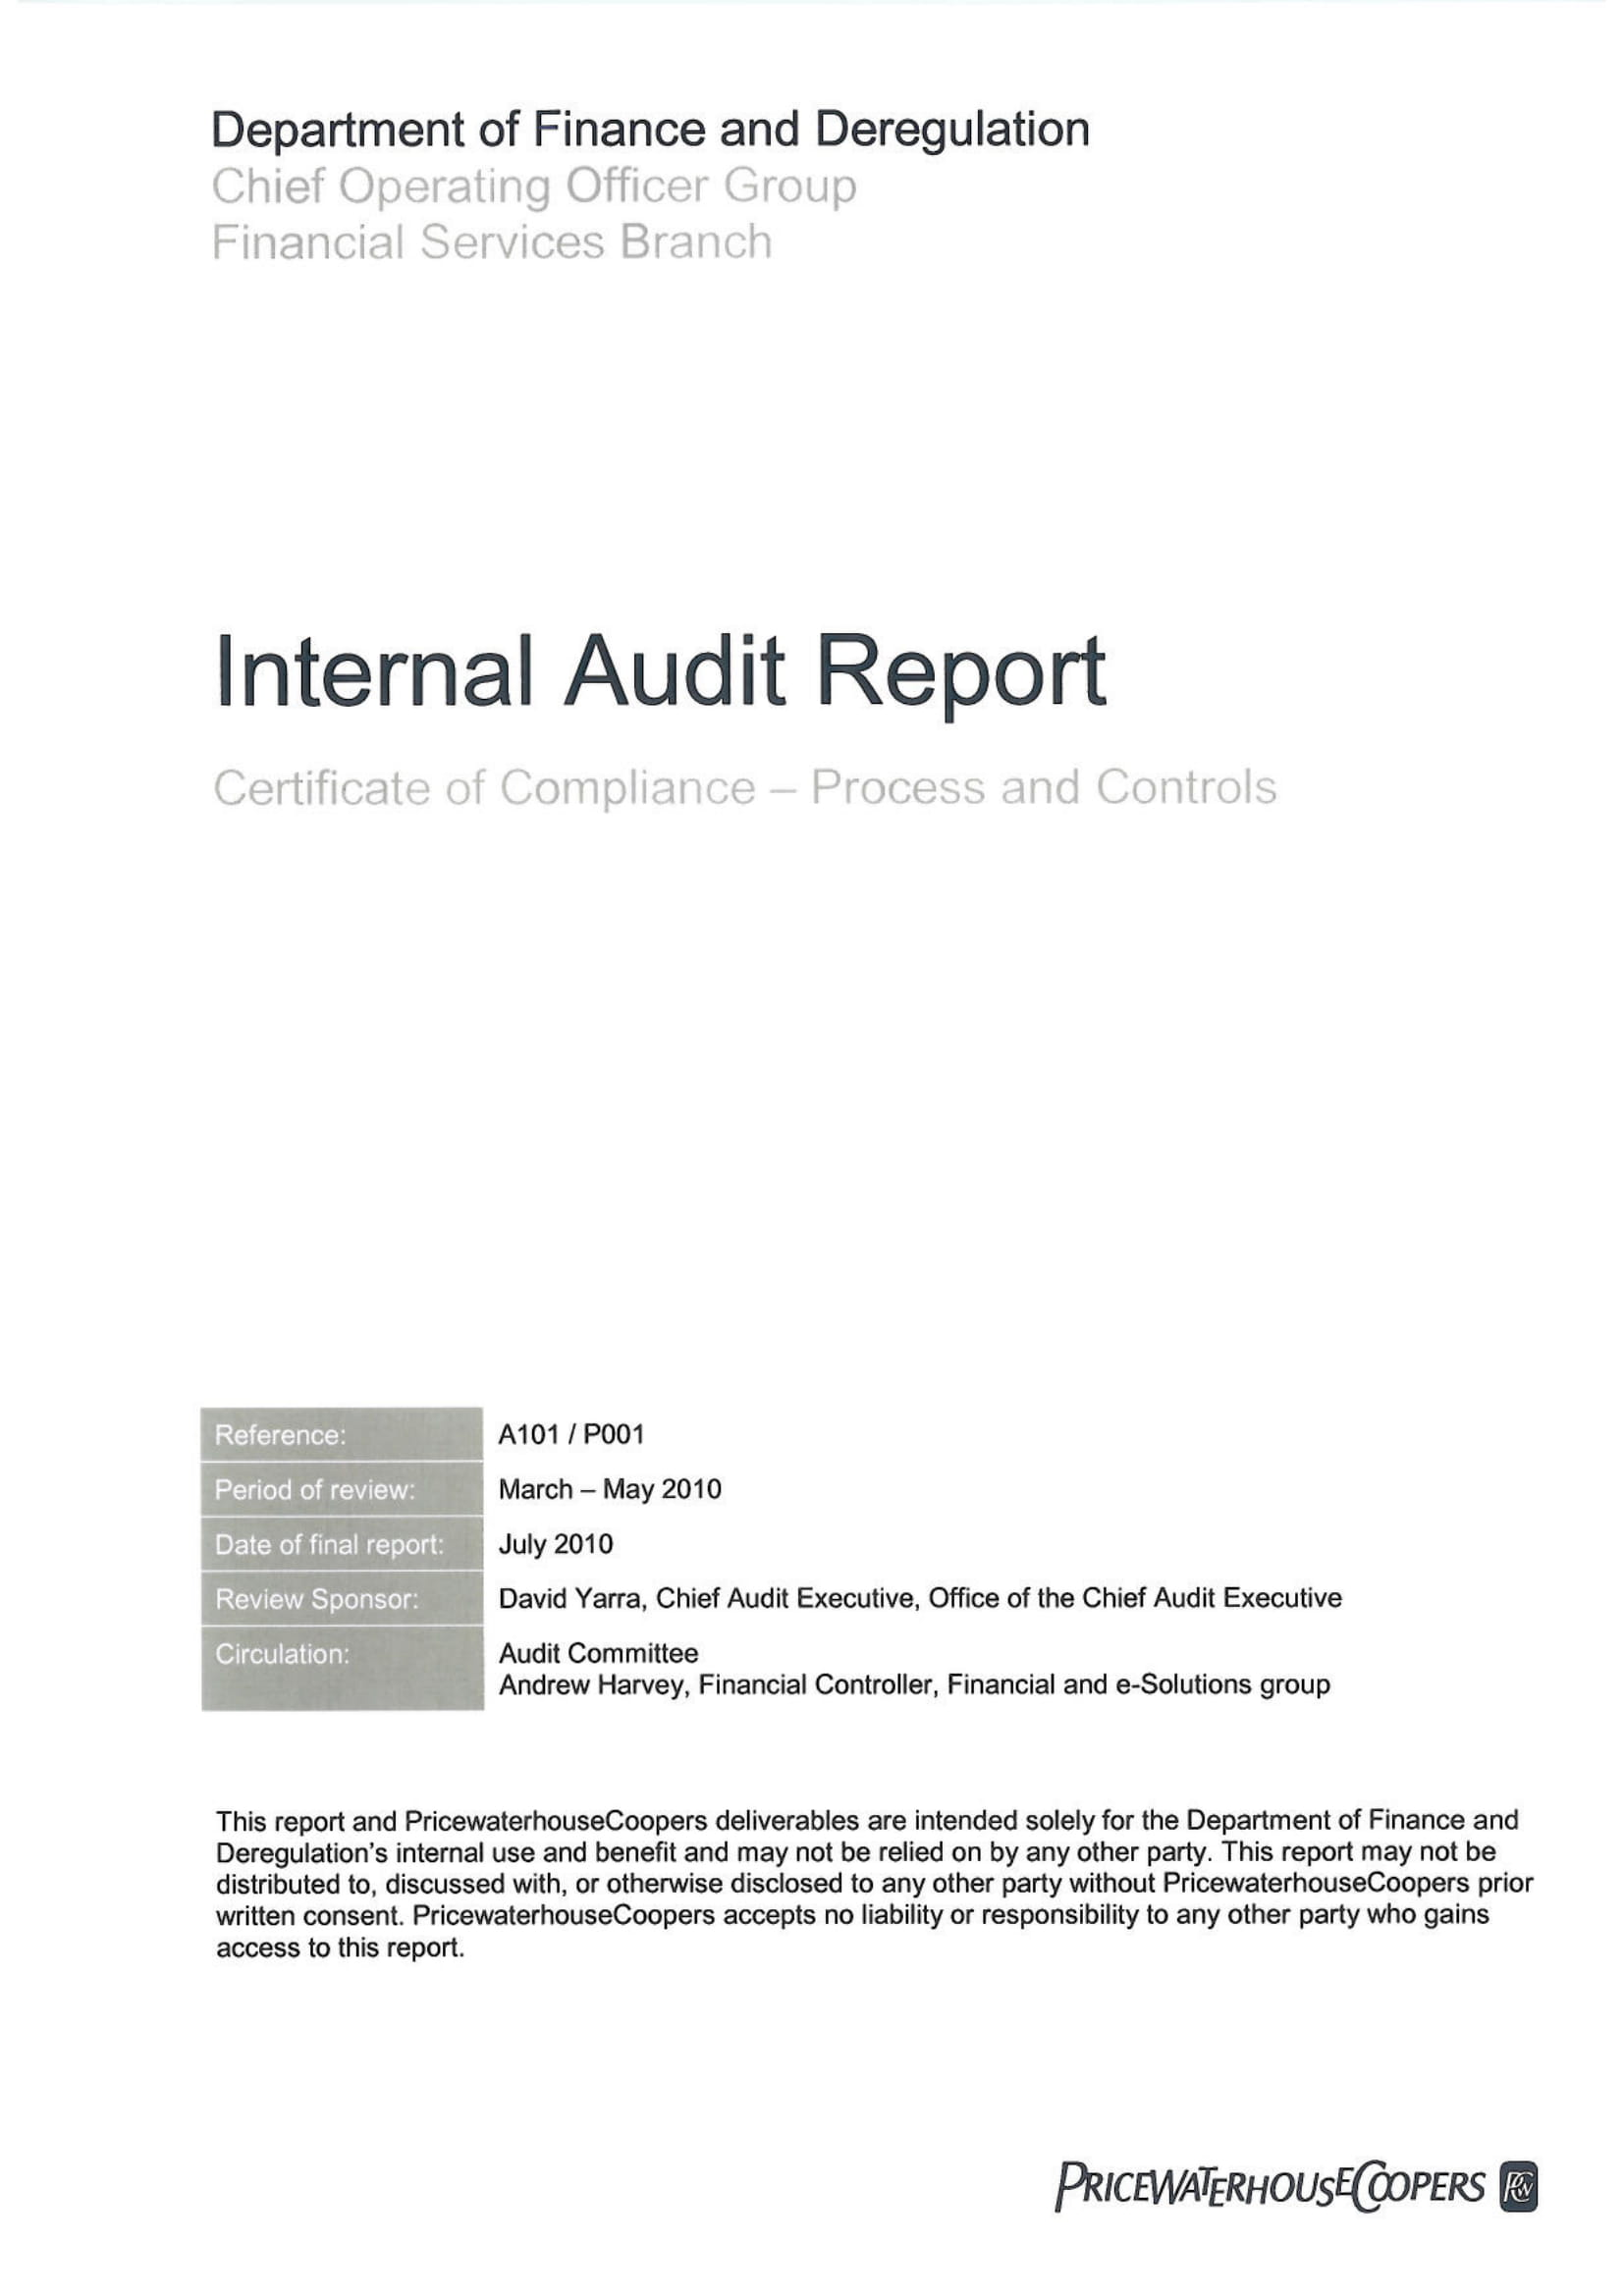 detailed internal audit report example 01